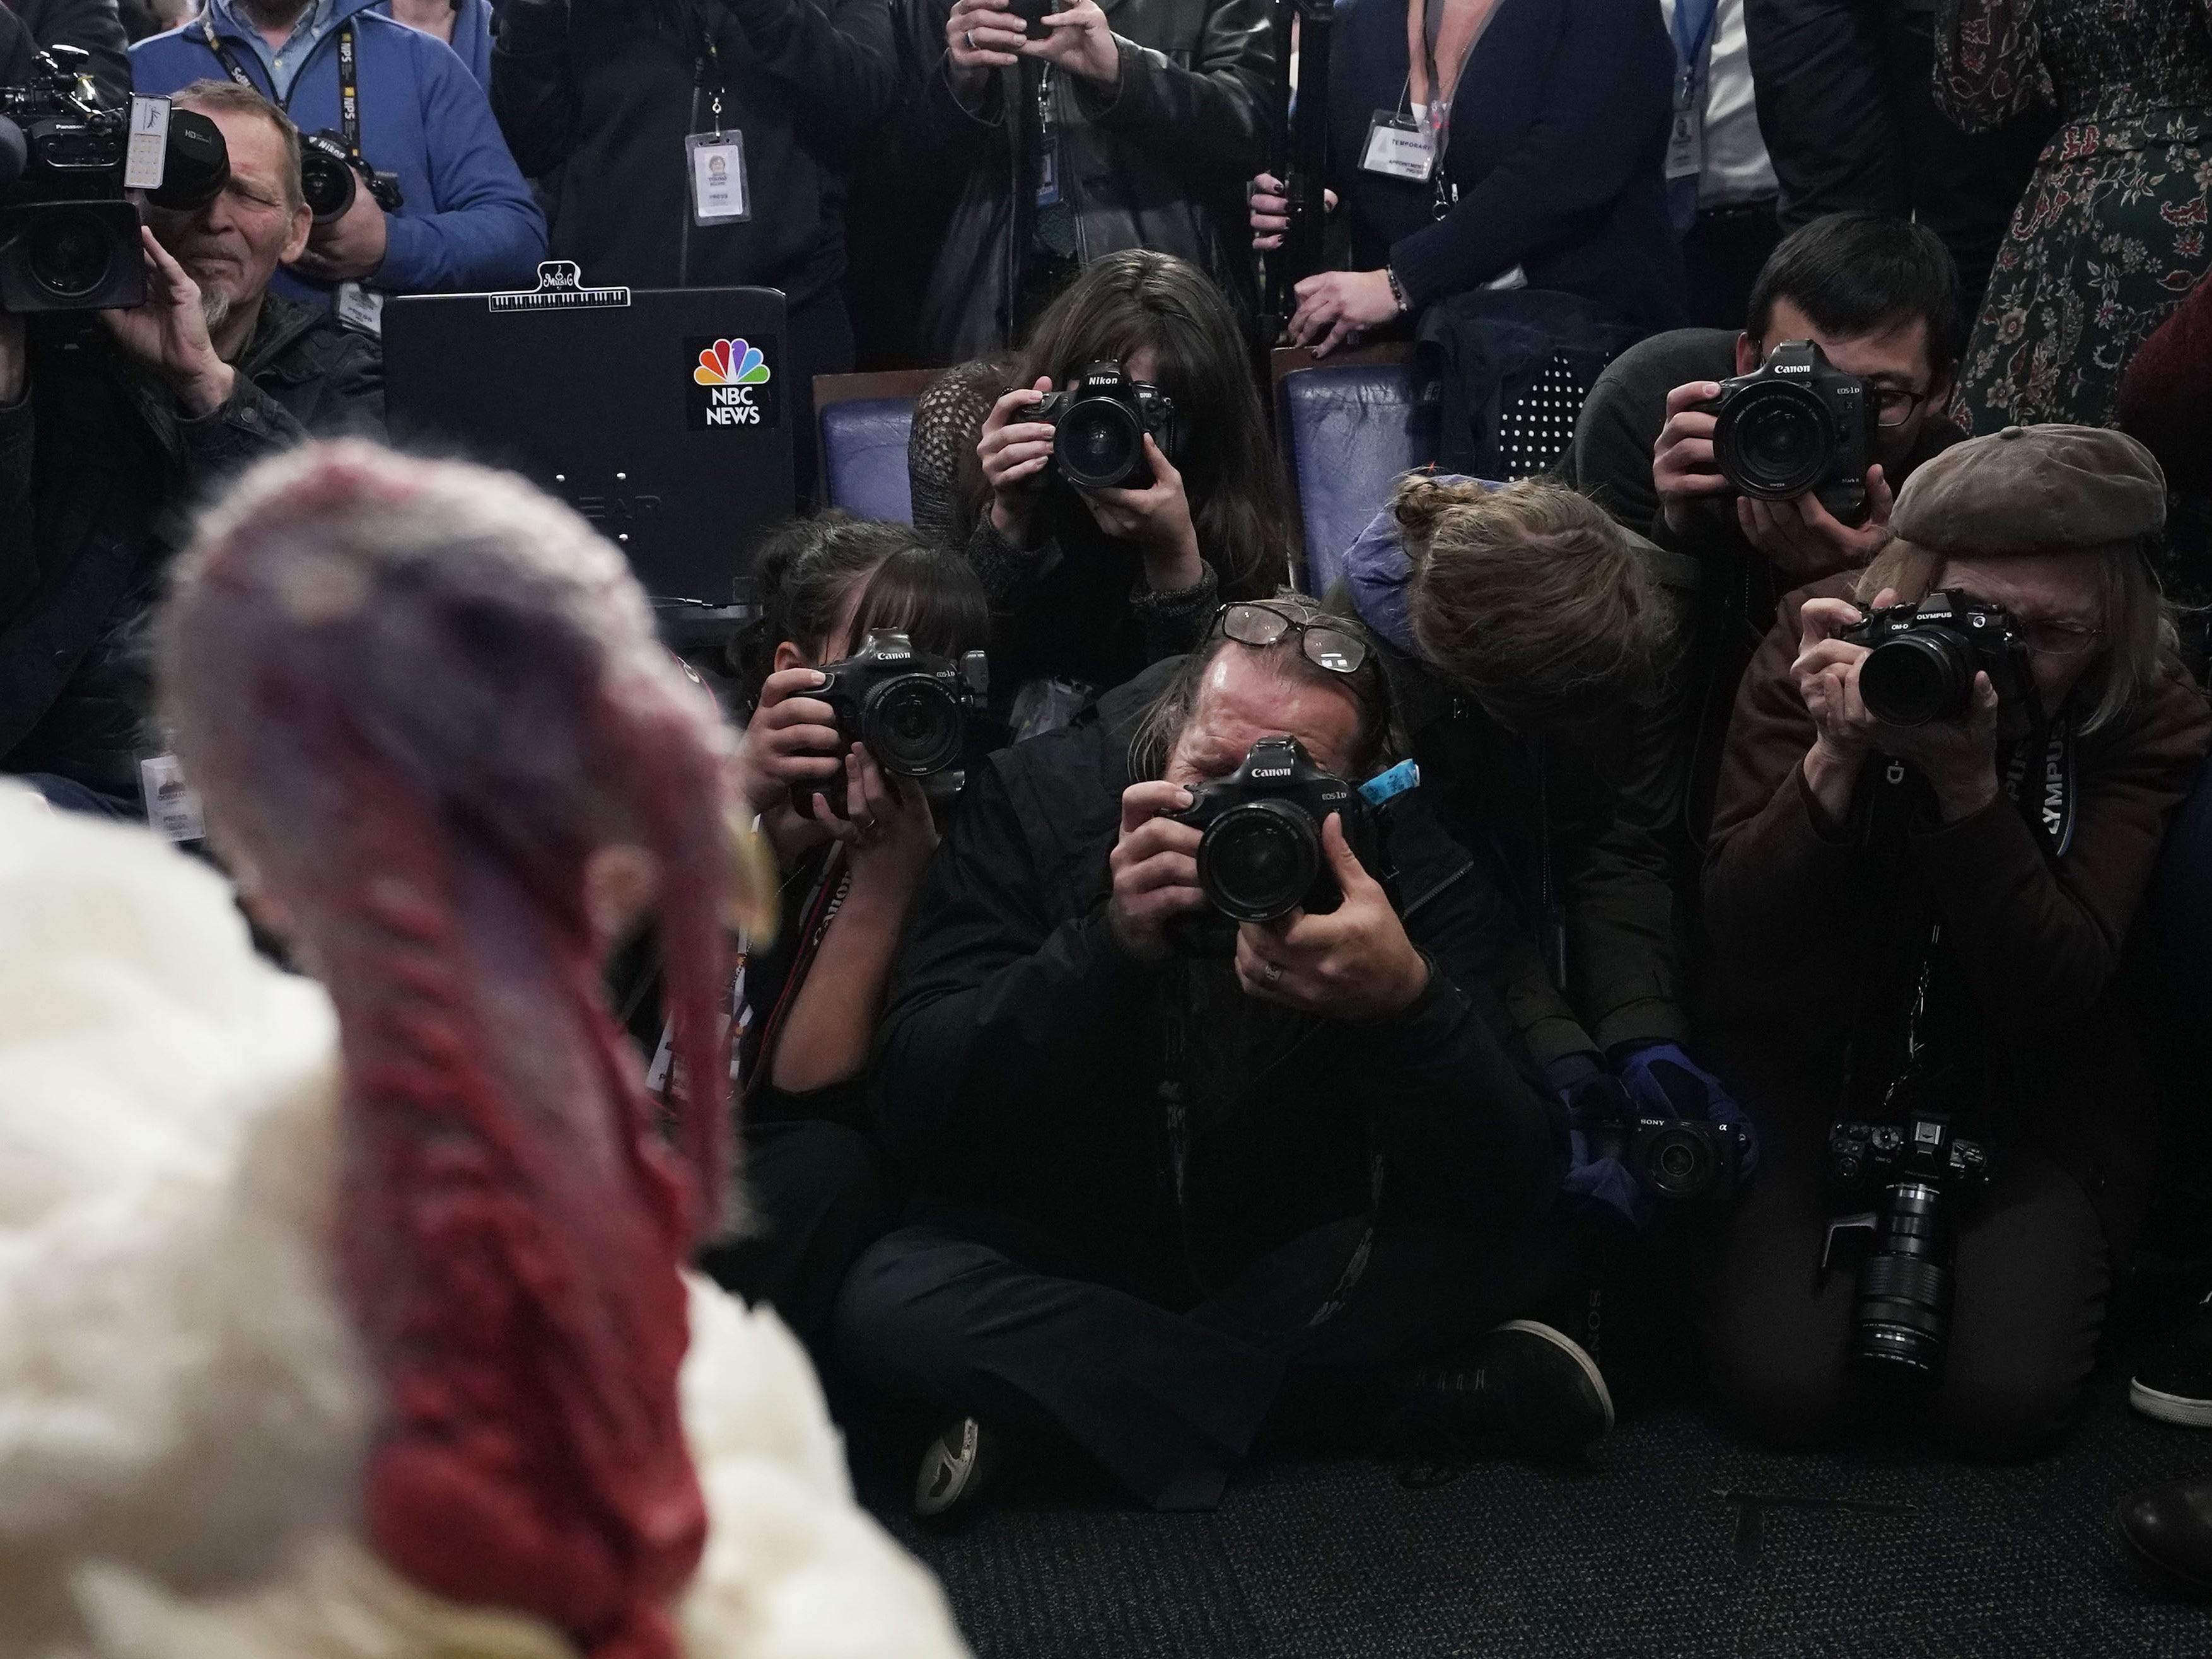 One of the turkeys that will be pardoned is brought into the James Brady Press Briefing Room for a visit with members of the press at the White House in Washington, Nov. 20, 2018.